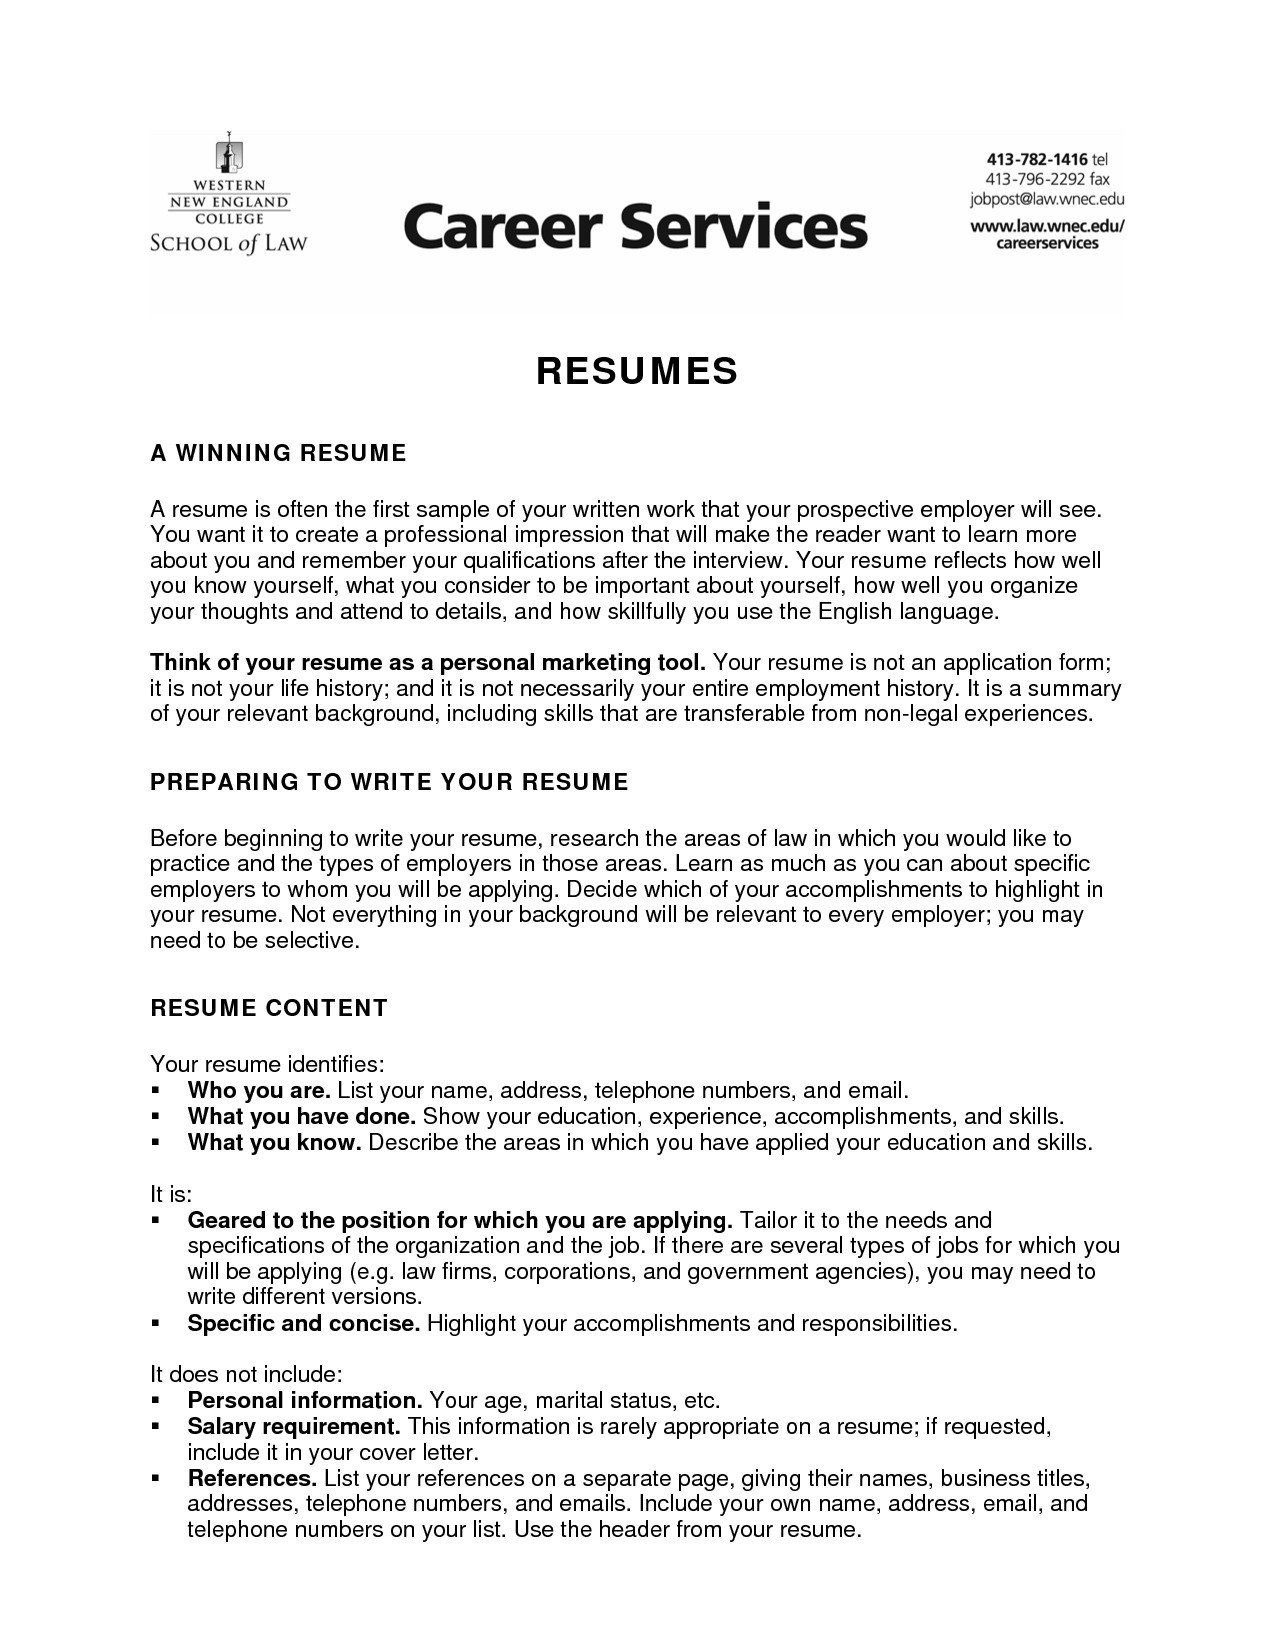 Tell Me Something That Is Not On Your Resume Fresh Awesome What Does A Job Resume Look Like Resume Objective Statement Student Resume Template Resume Skills